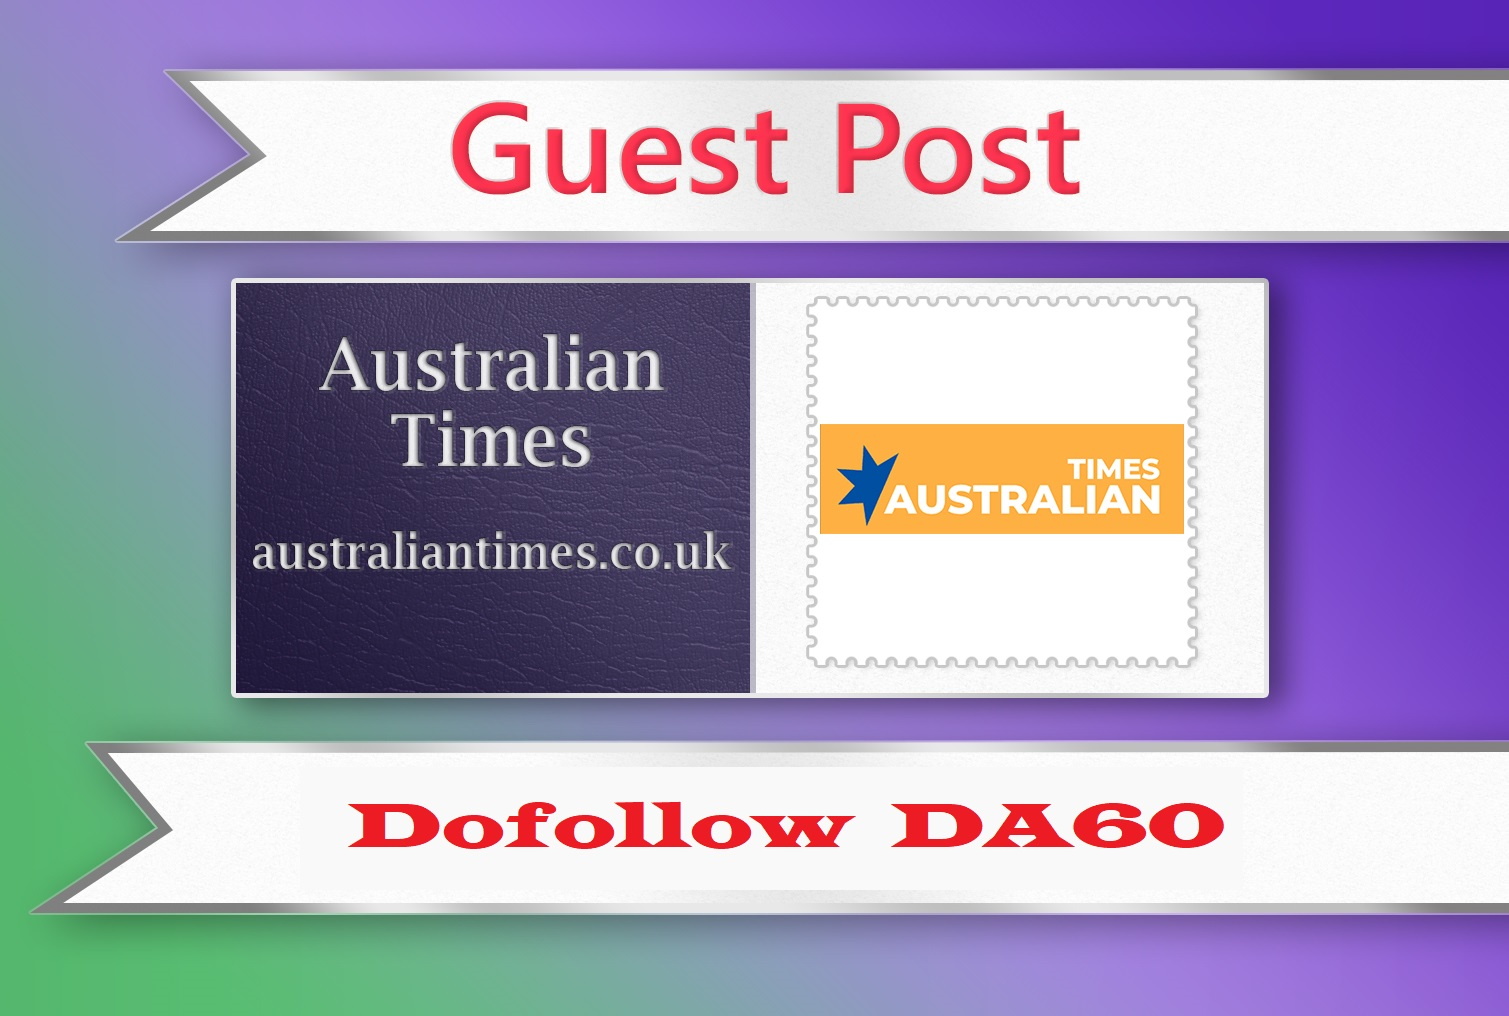 Guest post on Australian Times - australiantimes. co. uk - DA60